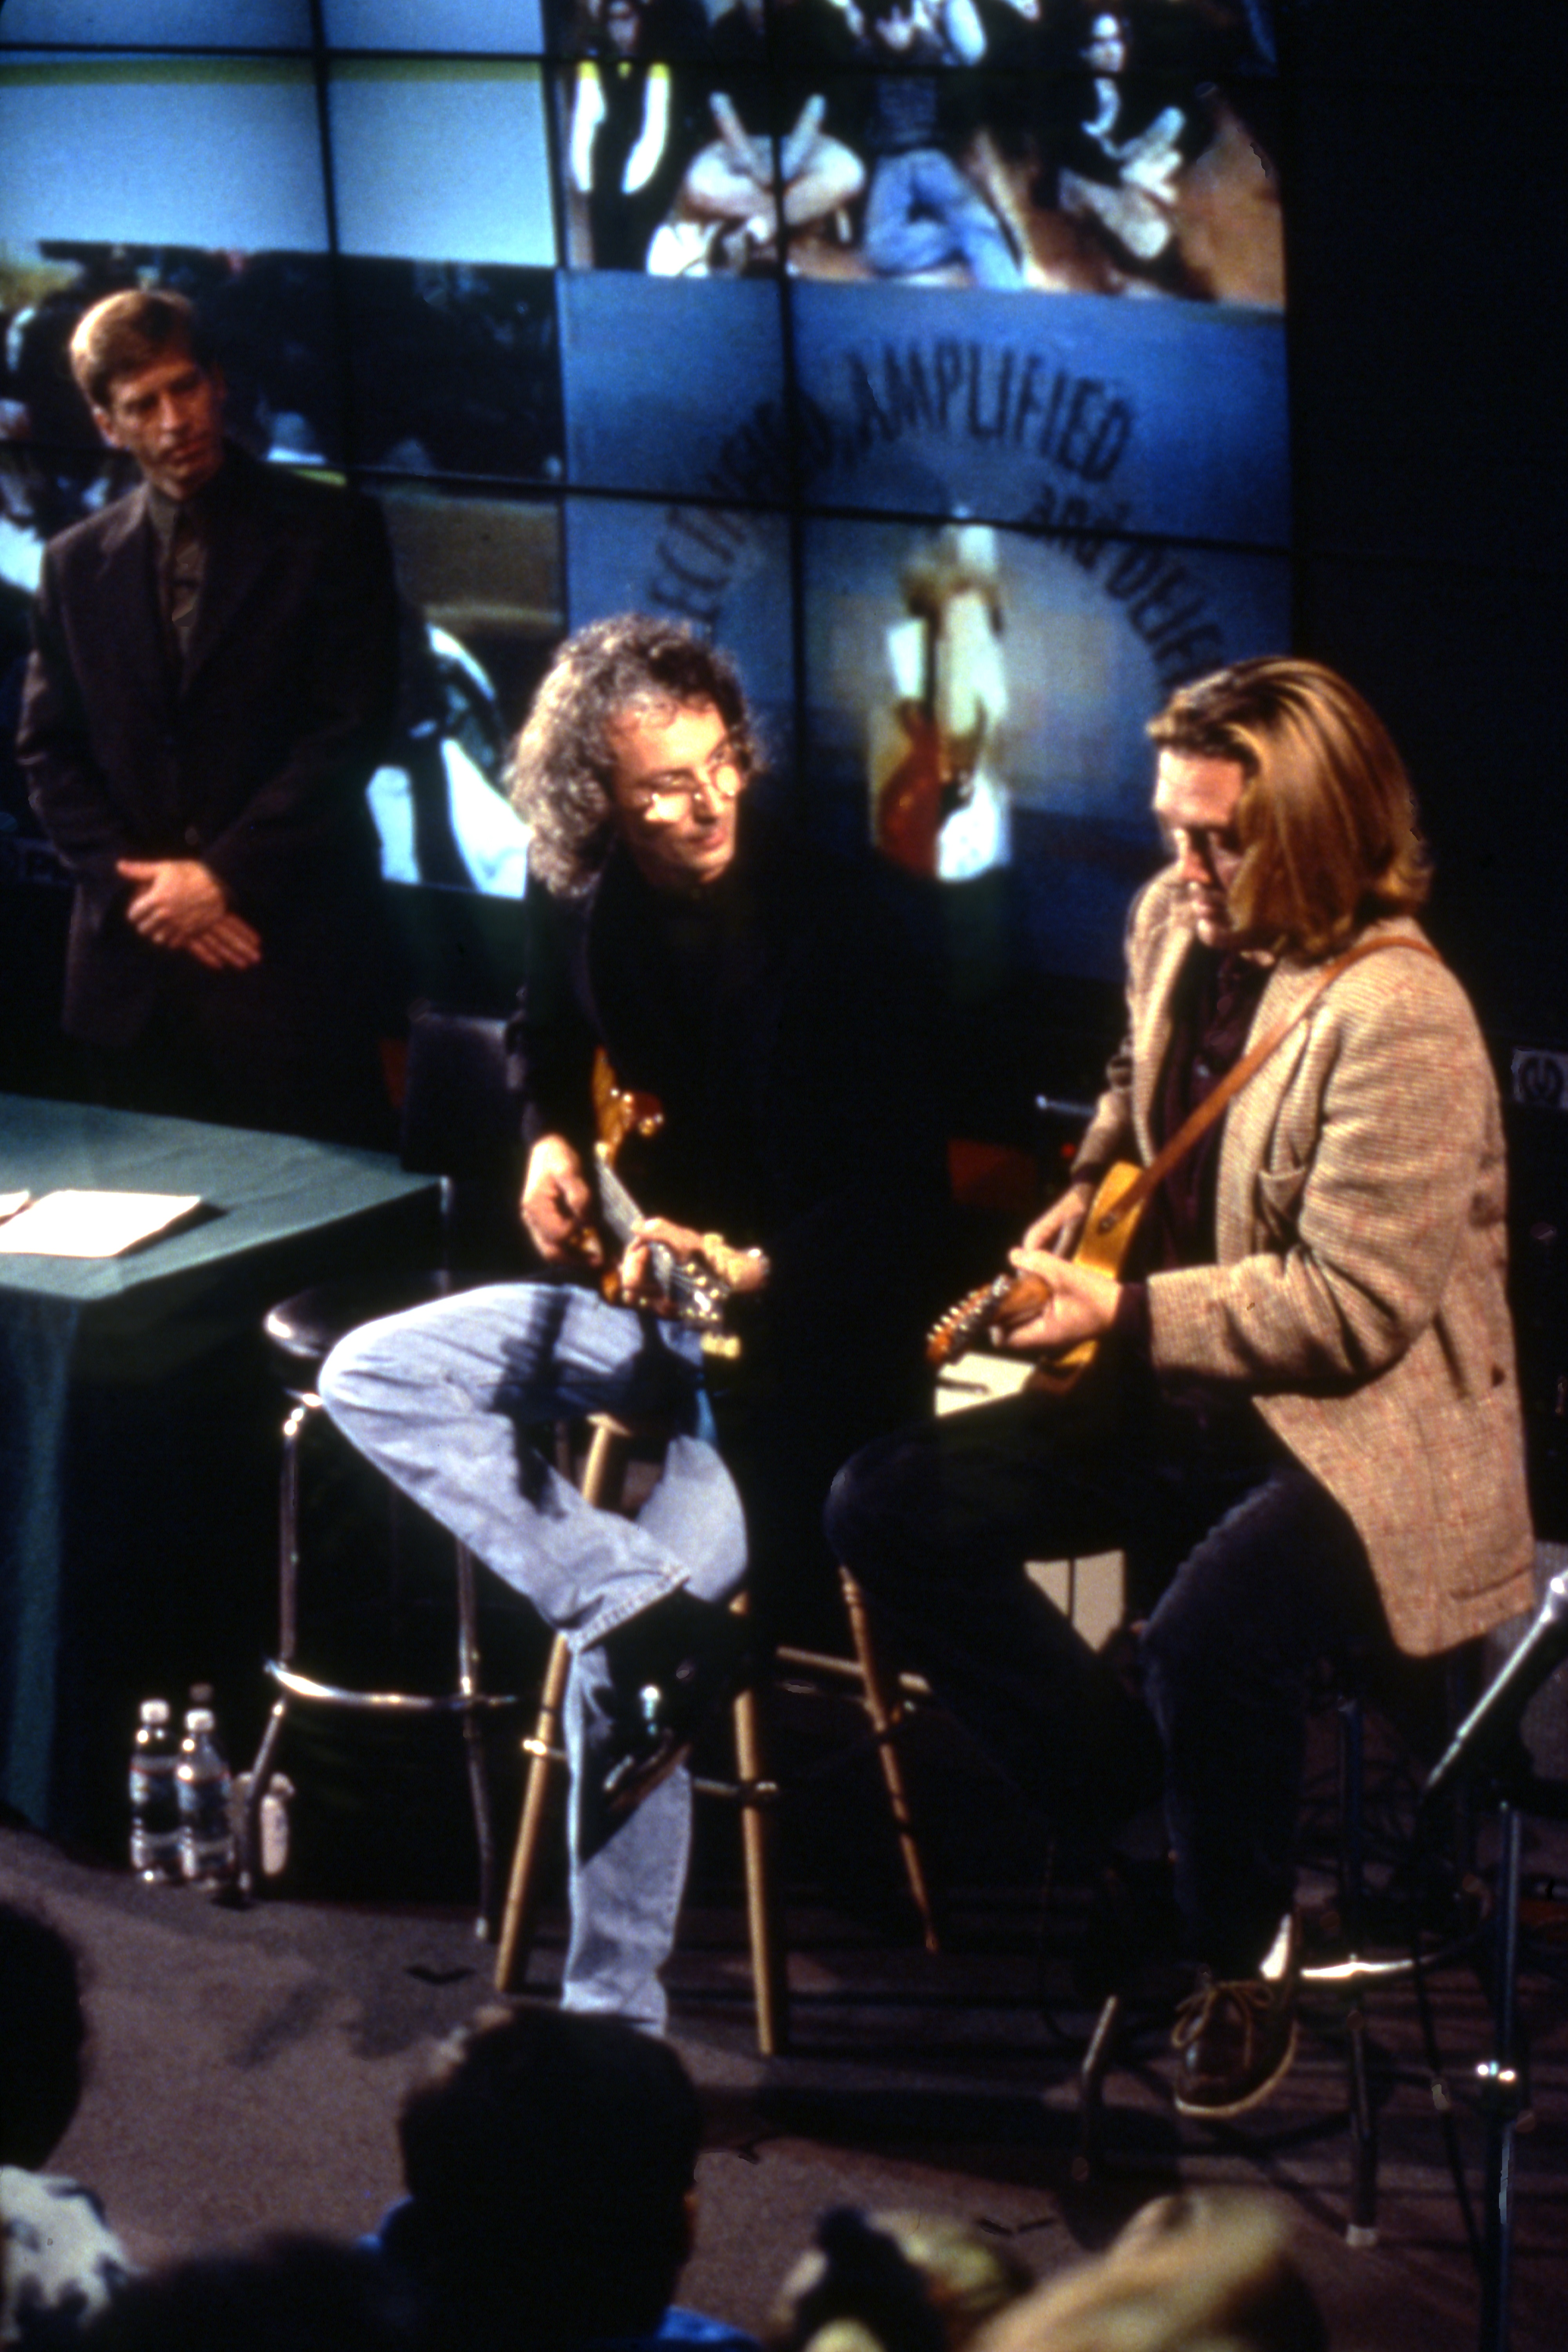 Guitar maker Paul Reed Smith and guitarist, G. E. Smith sitting on stools holding guitars.